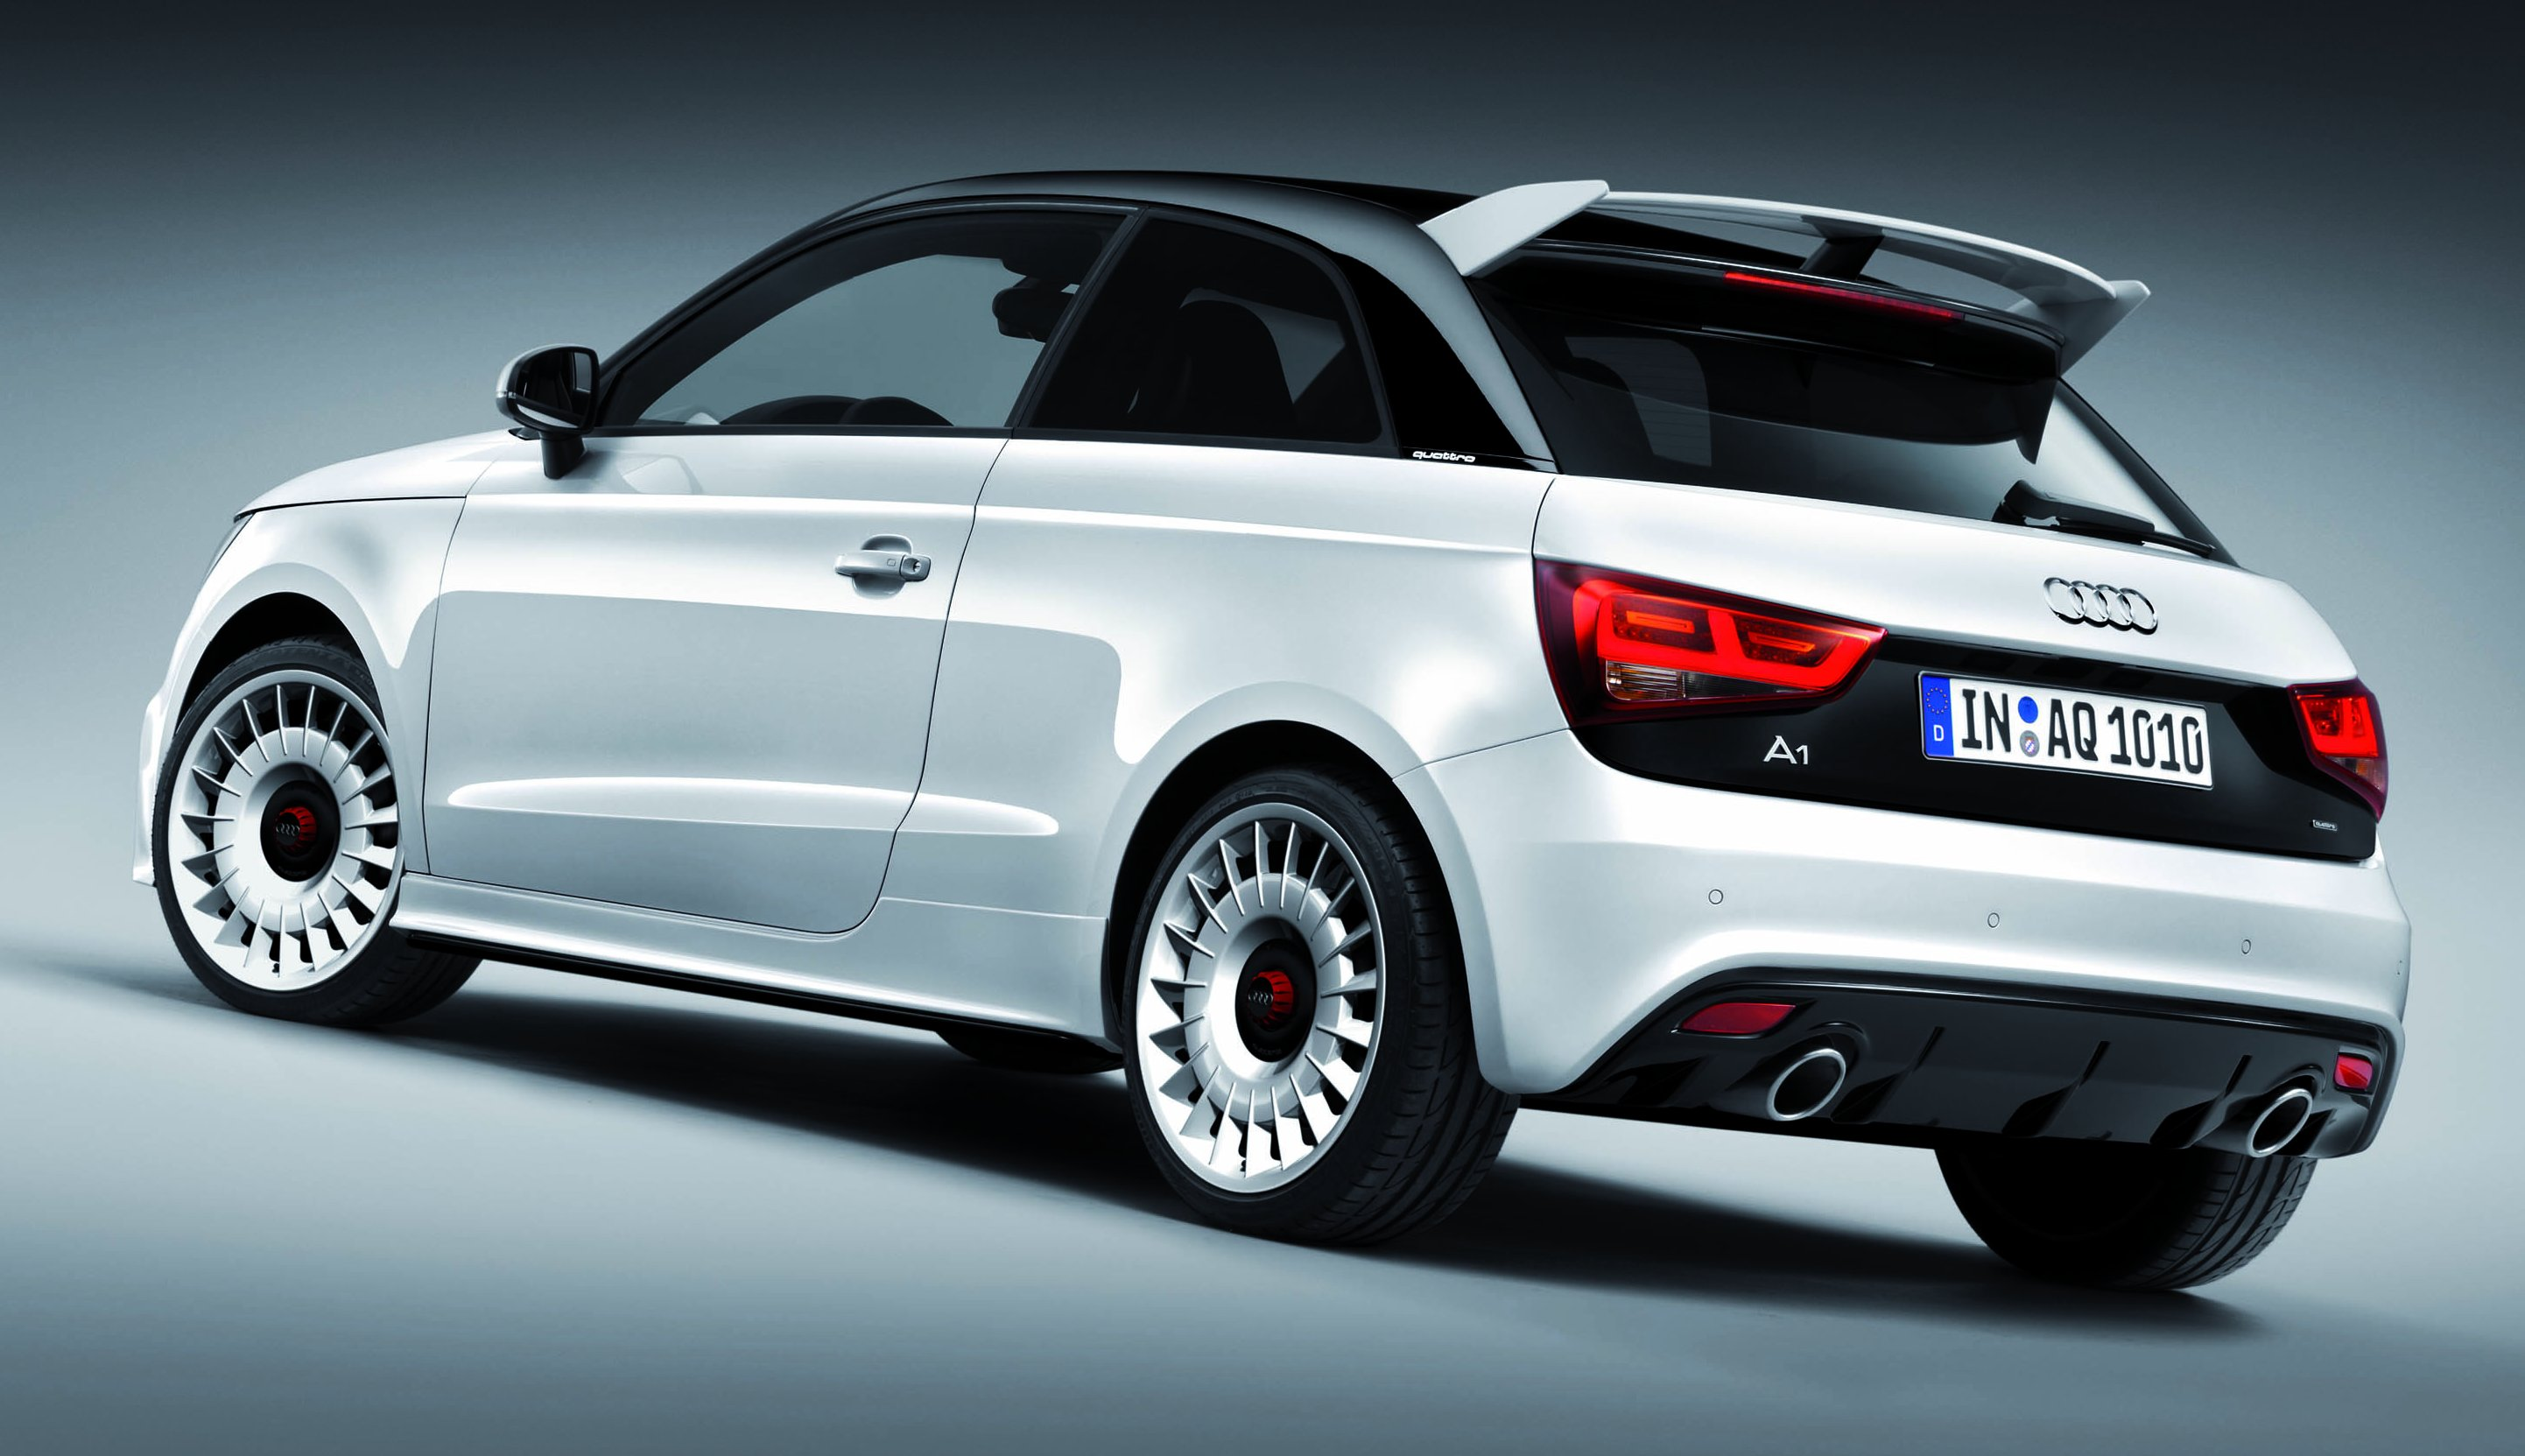 Audi A1 Quattro 256 Hp And 350 Nm Only 333 Units Image 81115